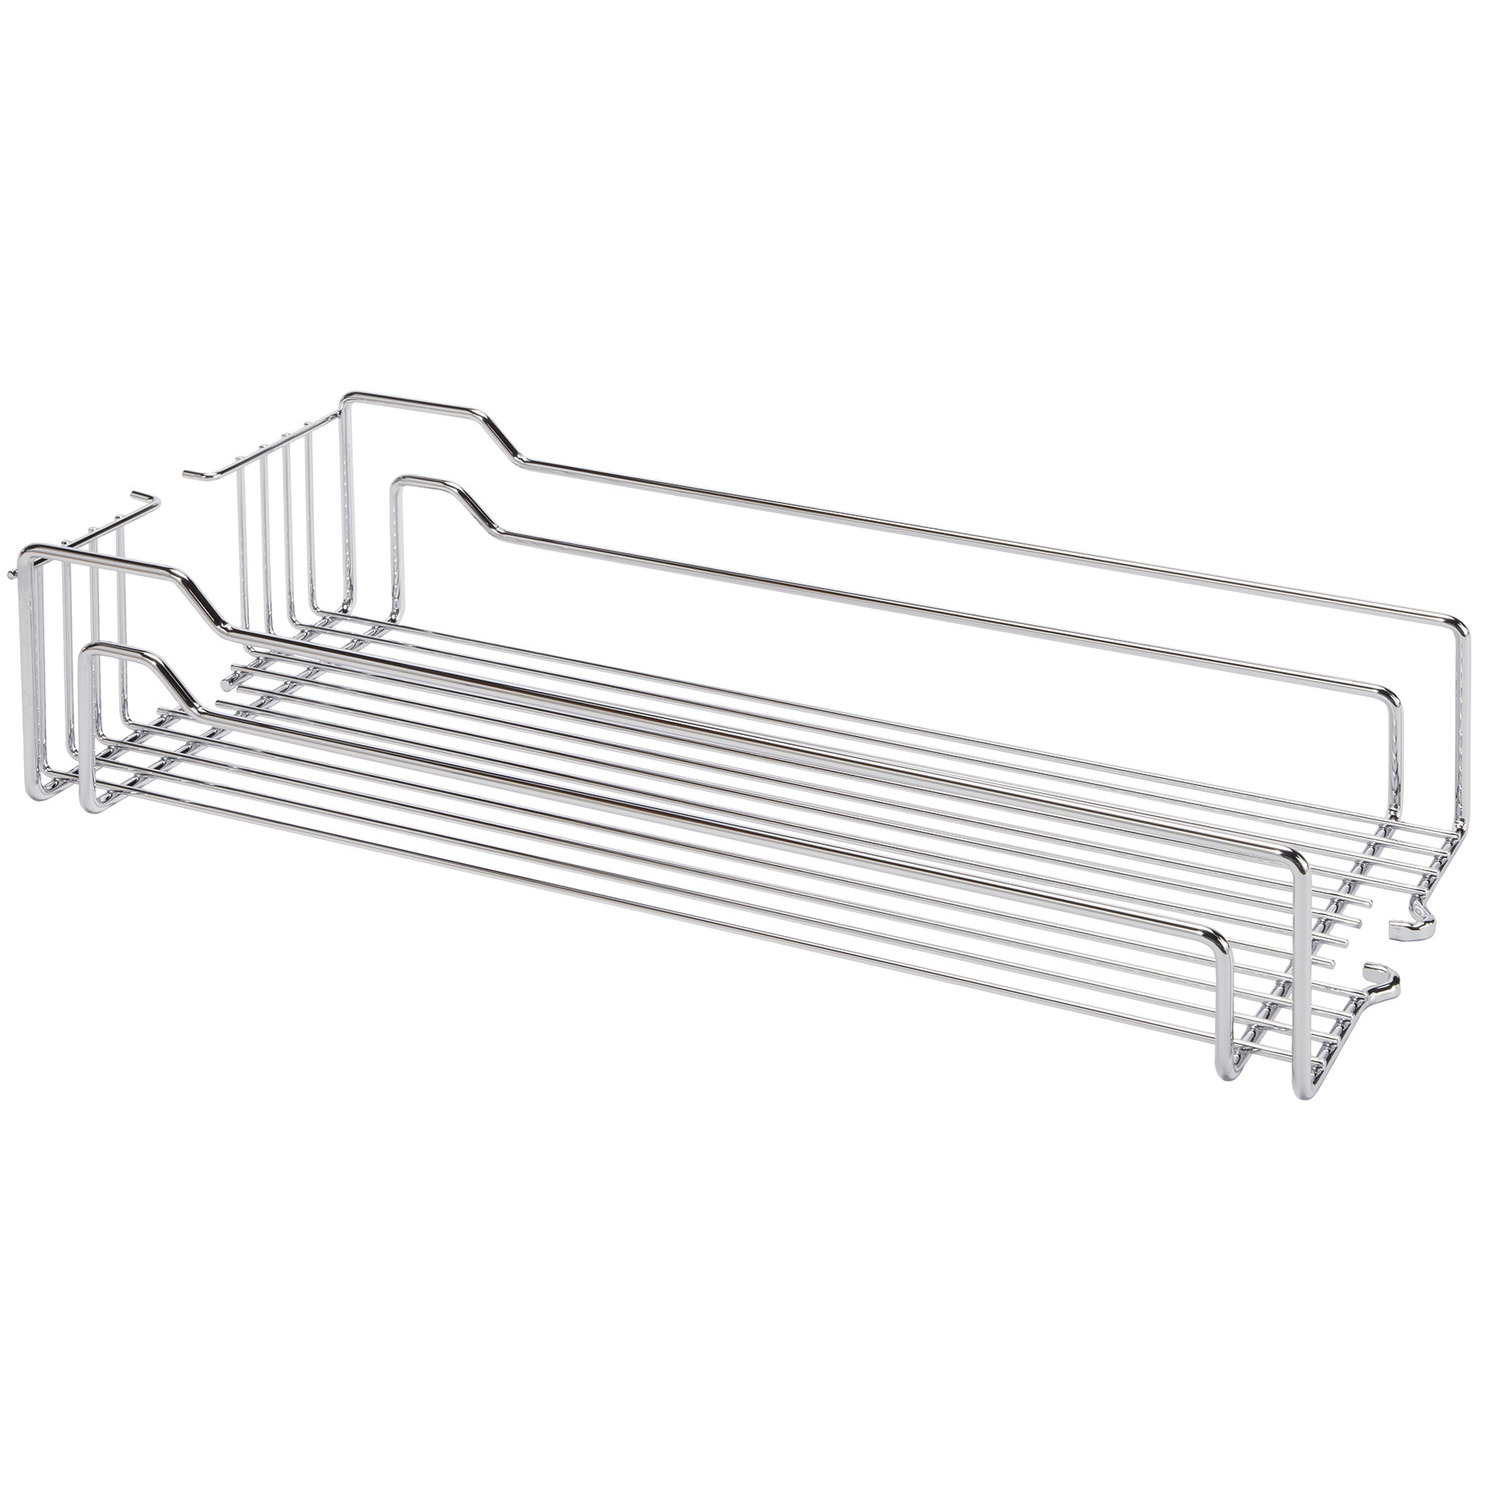 Hafele 546 63 204 Wire Basket Set For Pantry Pull Out